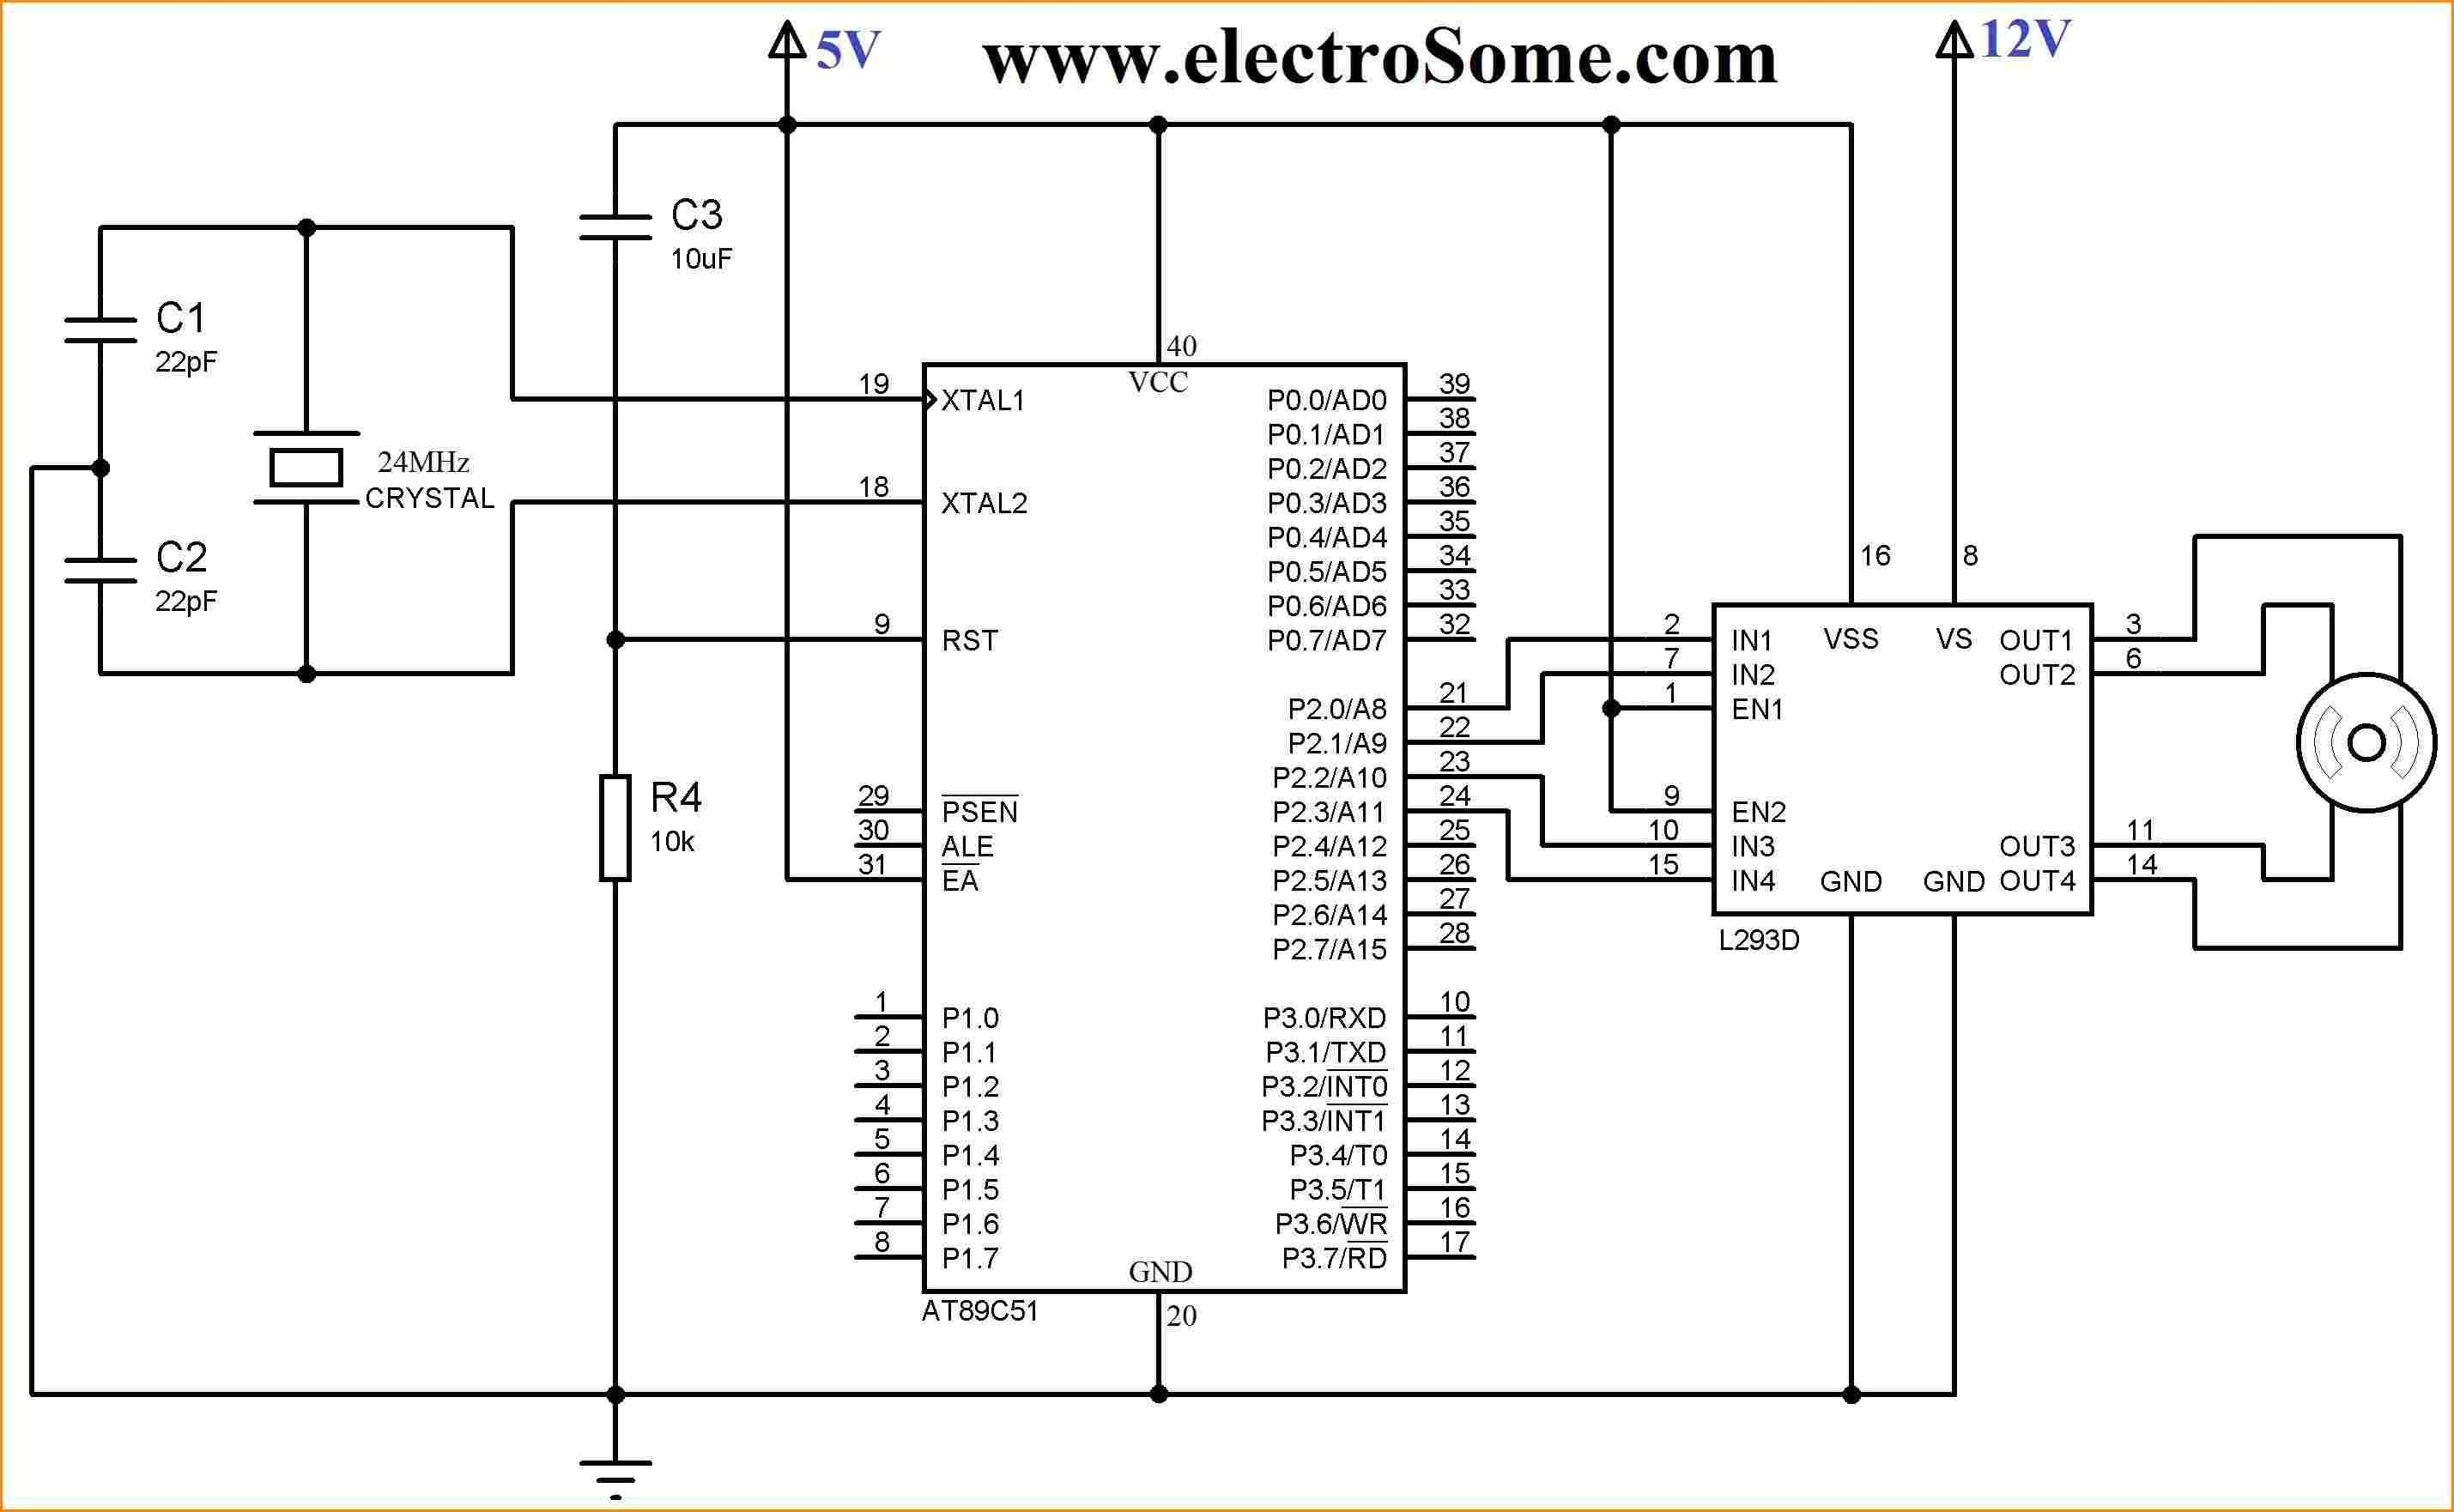 Unique Skytronics Alternator Wiring Diagram Diagrams Digramssample Diagramimages Check More At Https Nostoc Co House Wiring Security Camera Stepper Motor